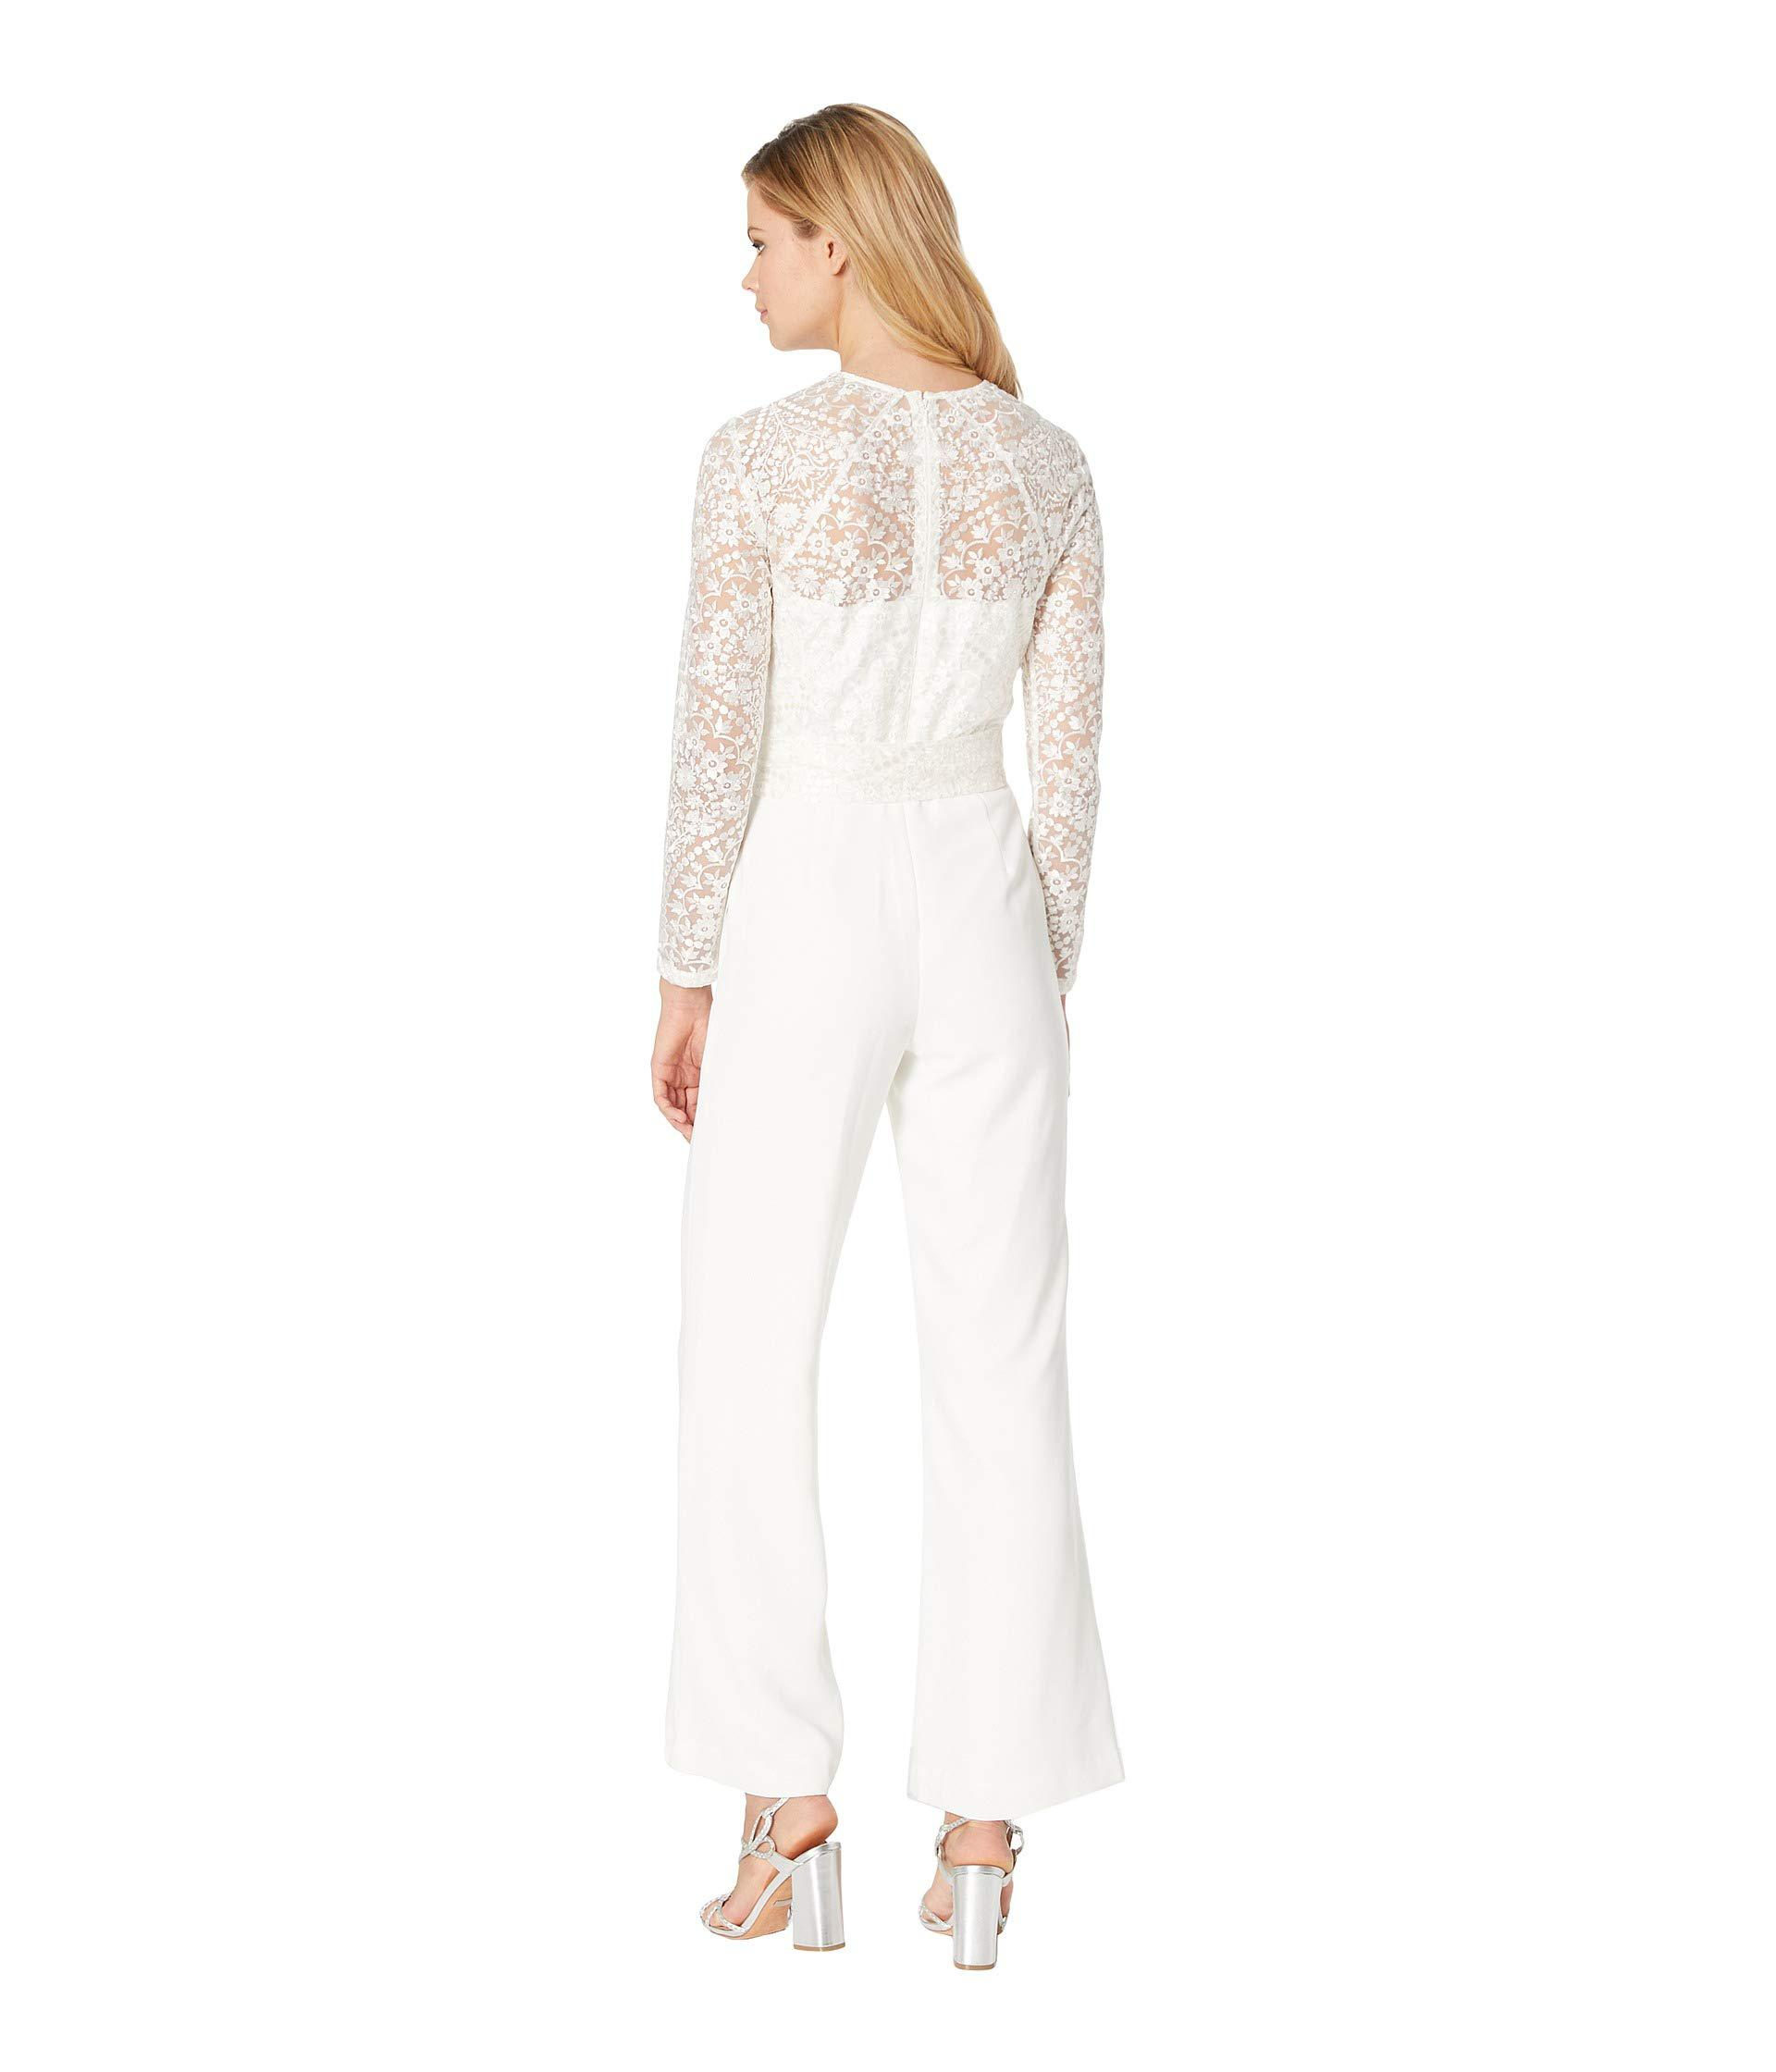 c0a6af1fed18 Tahari - White Long Sleeve Lace   Crepe Jumpsuit - Lyst. View fullscreen